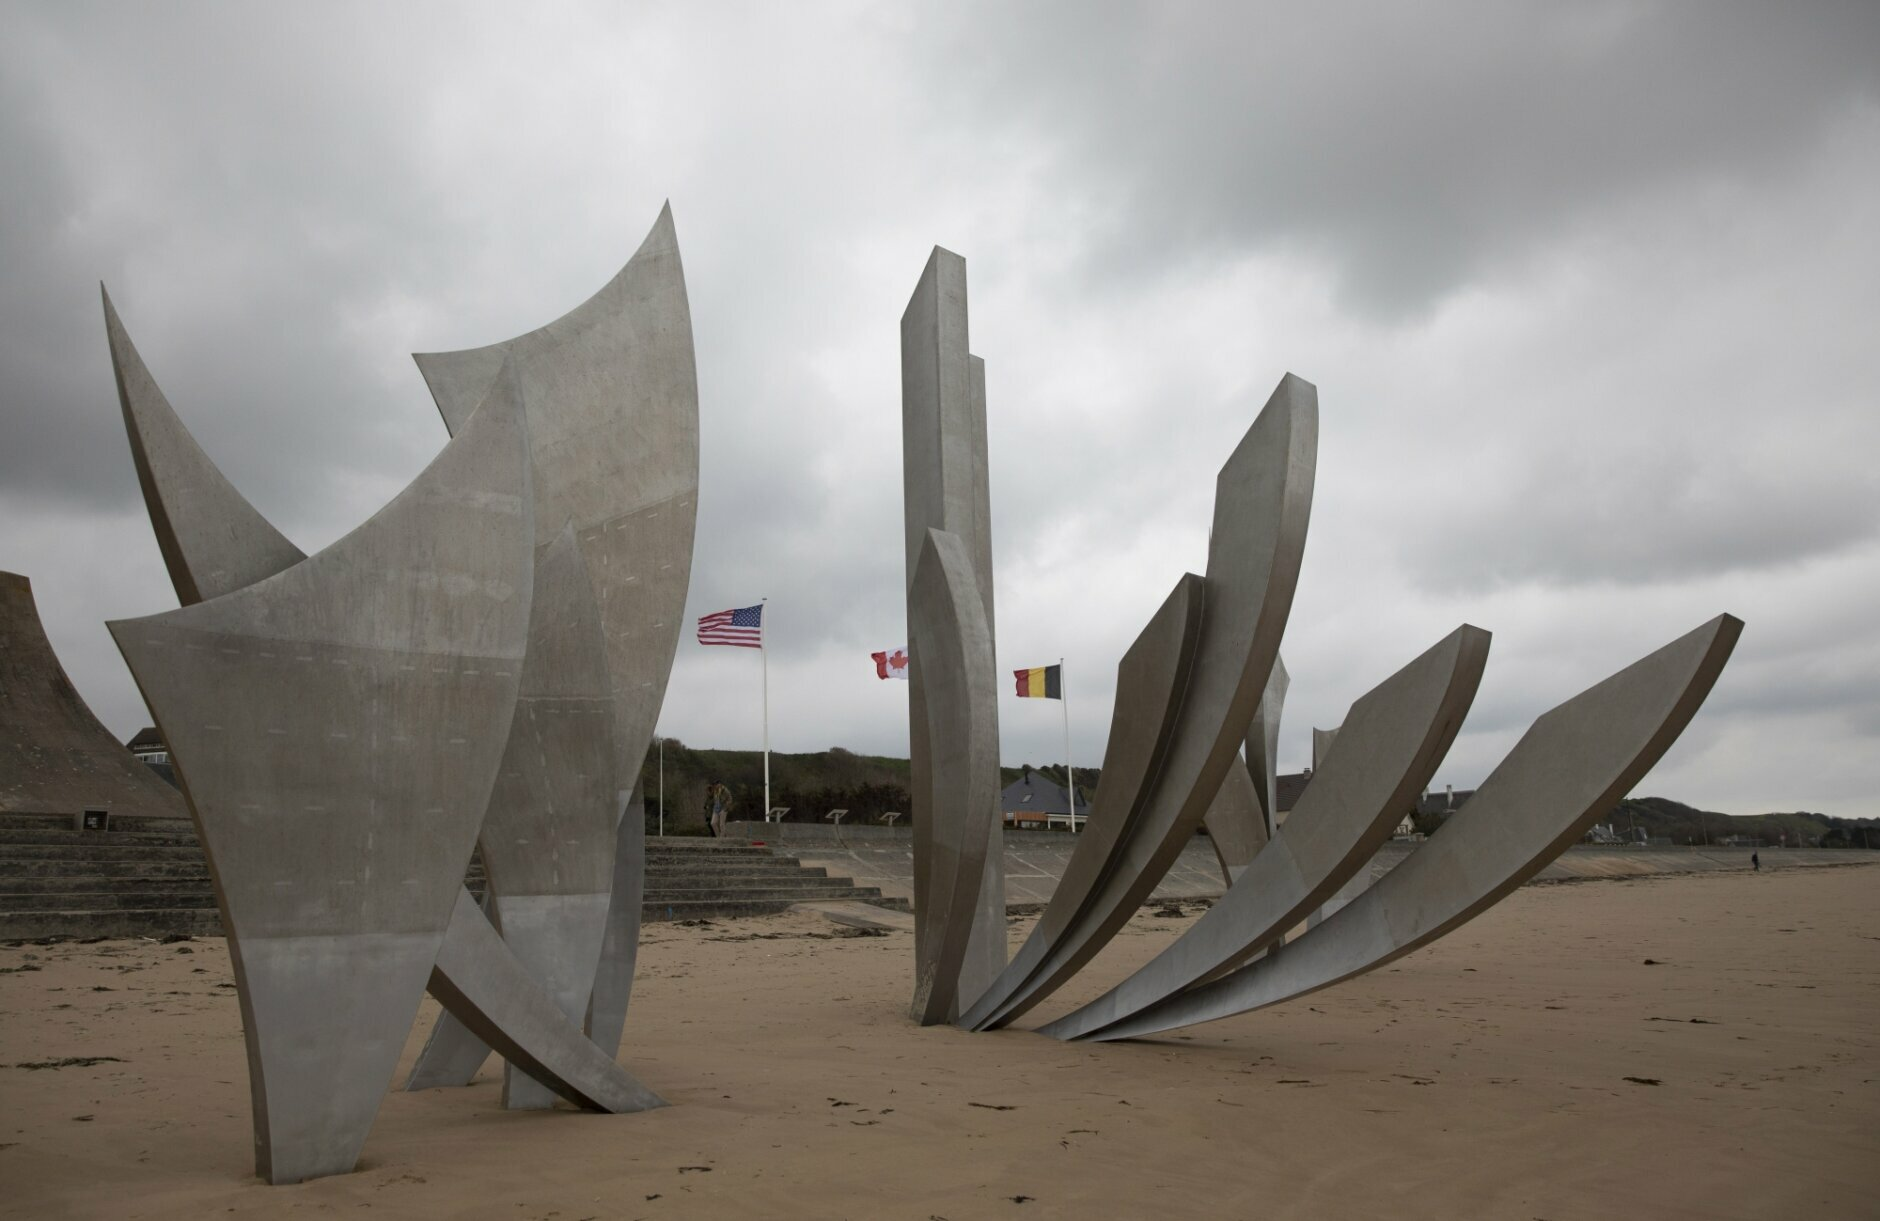 Halloween Havoc 2020 Omaha On sad anniversary, few to mourn the D Day dead in Normandy | WTOP